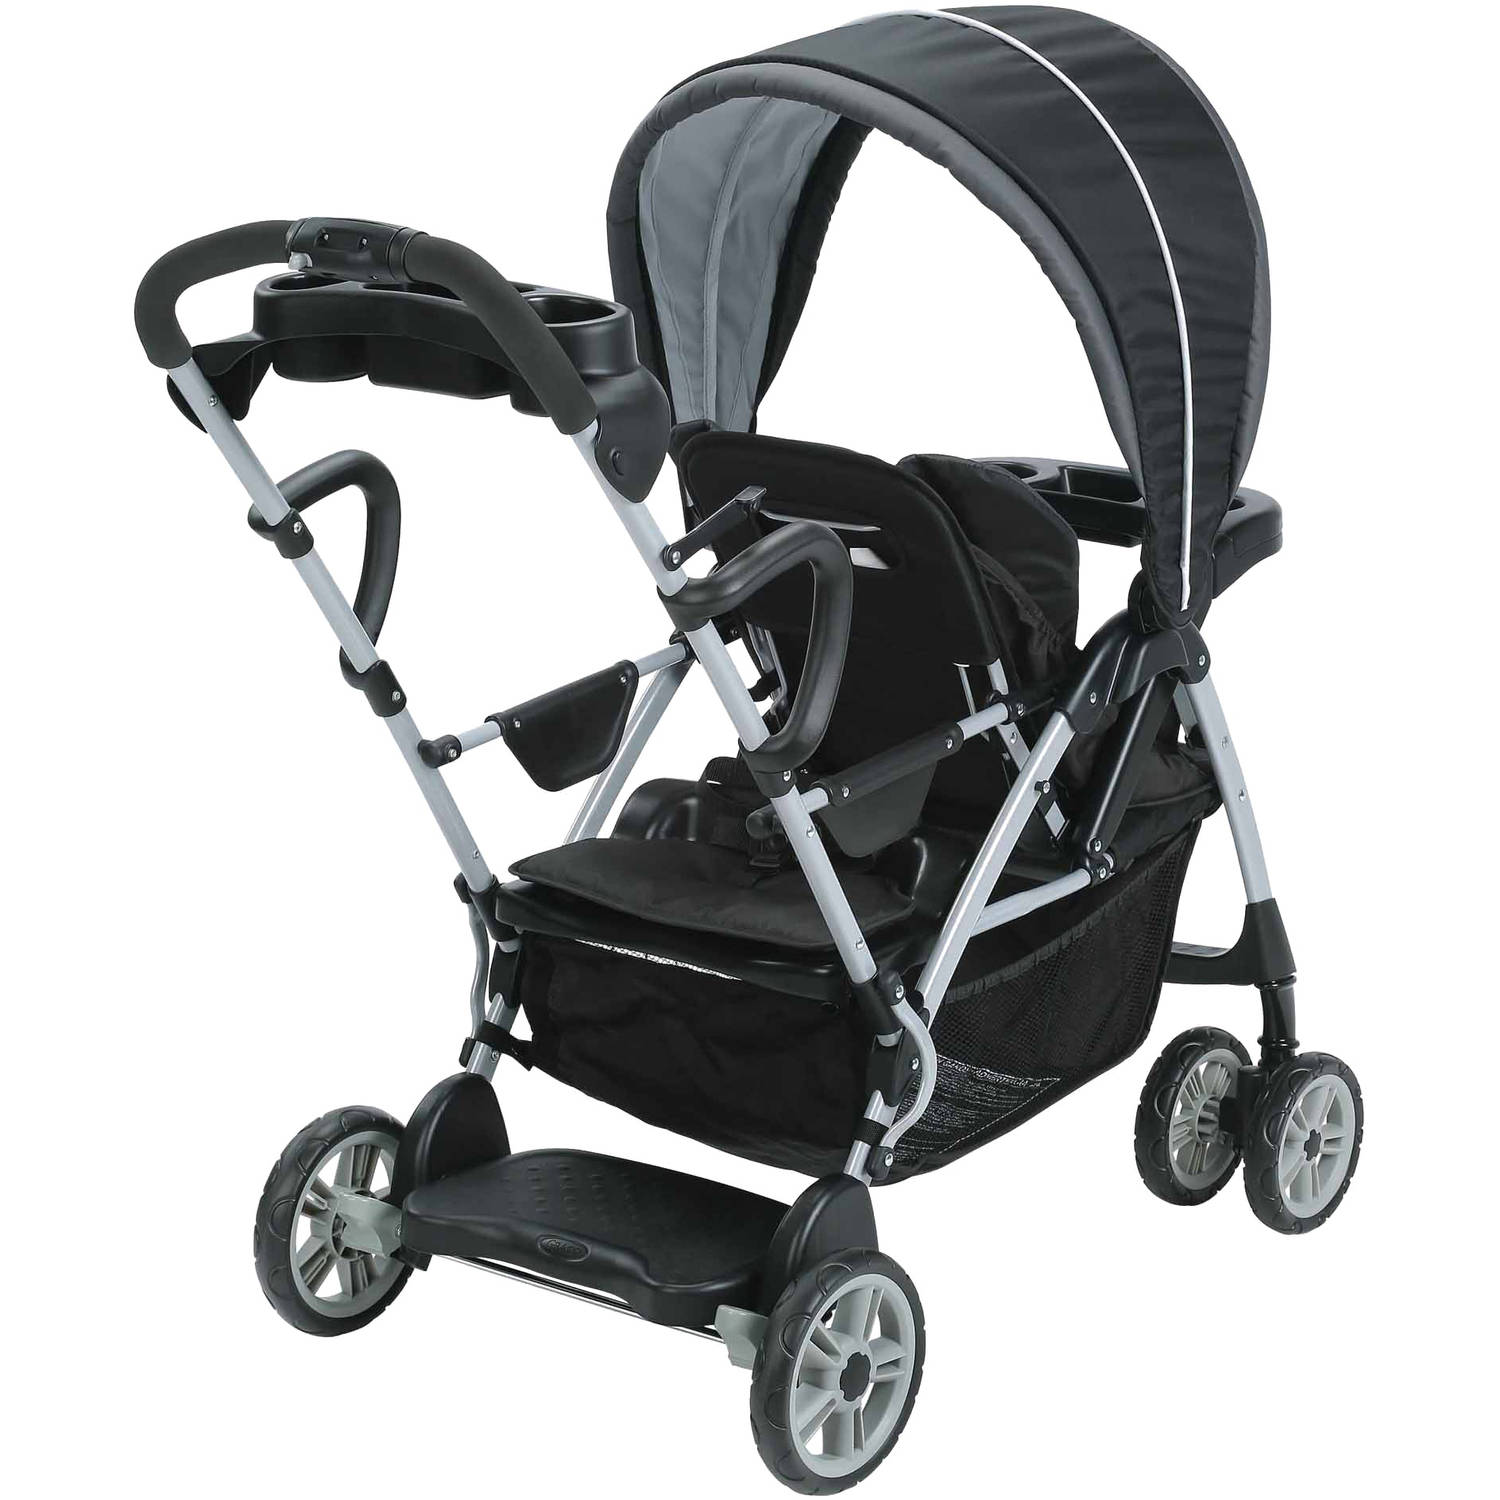 Graco Room For 2 Click Connect Stand & Ride Double Stroller, Gotham